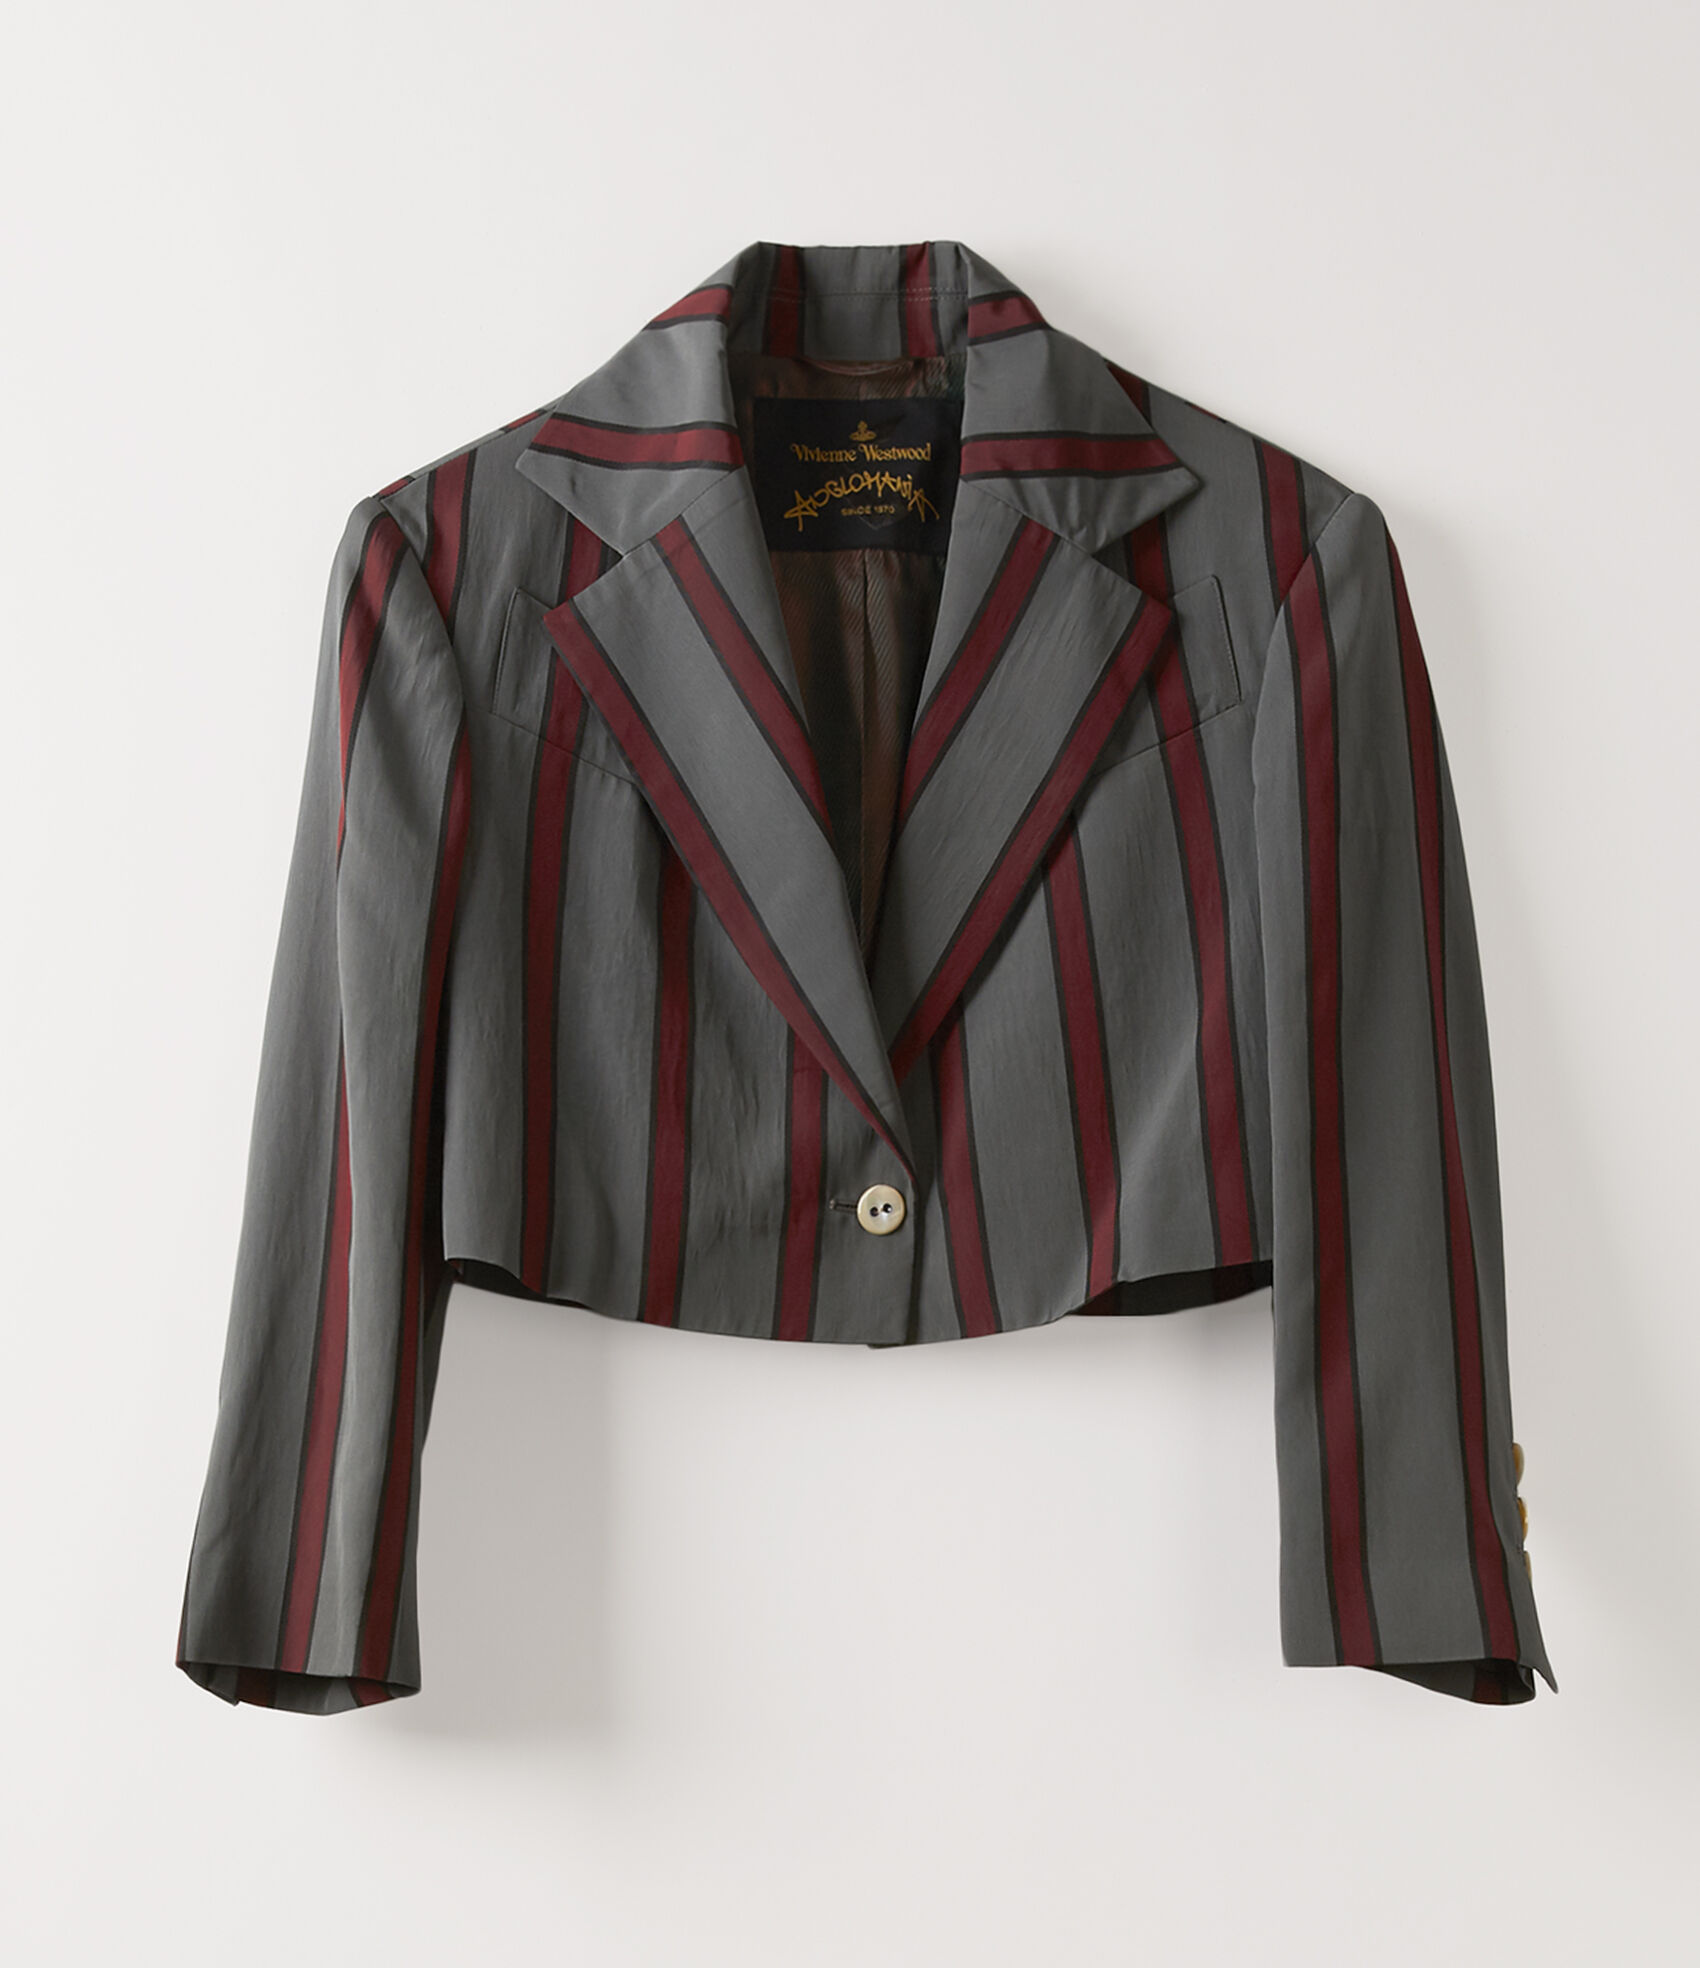 Cropped Jacket in Grey from Vivienne Westwood